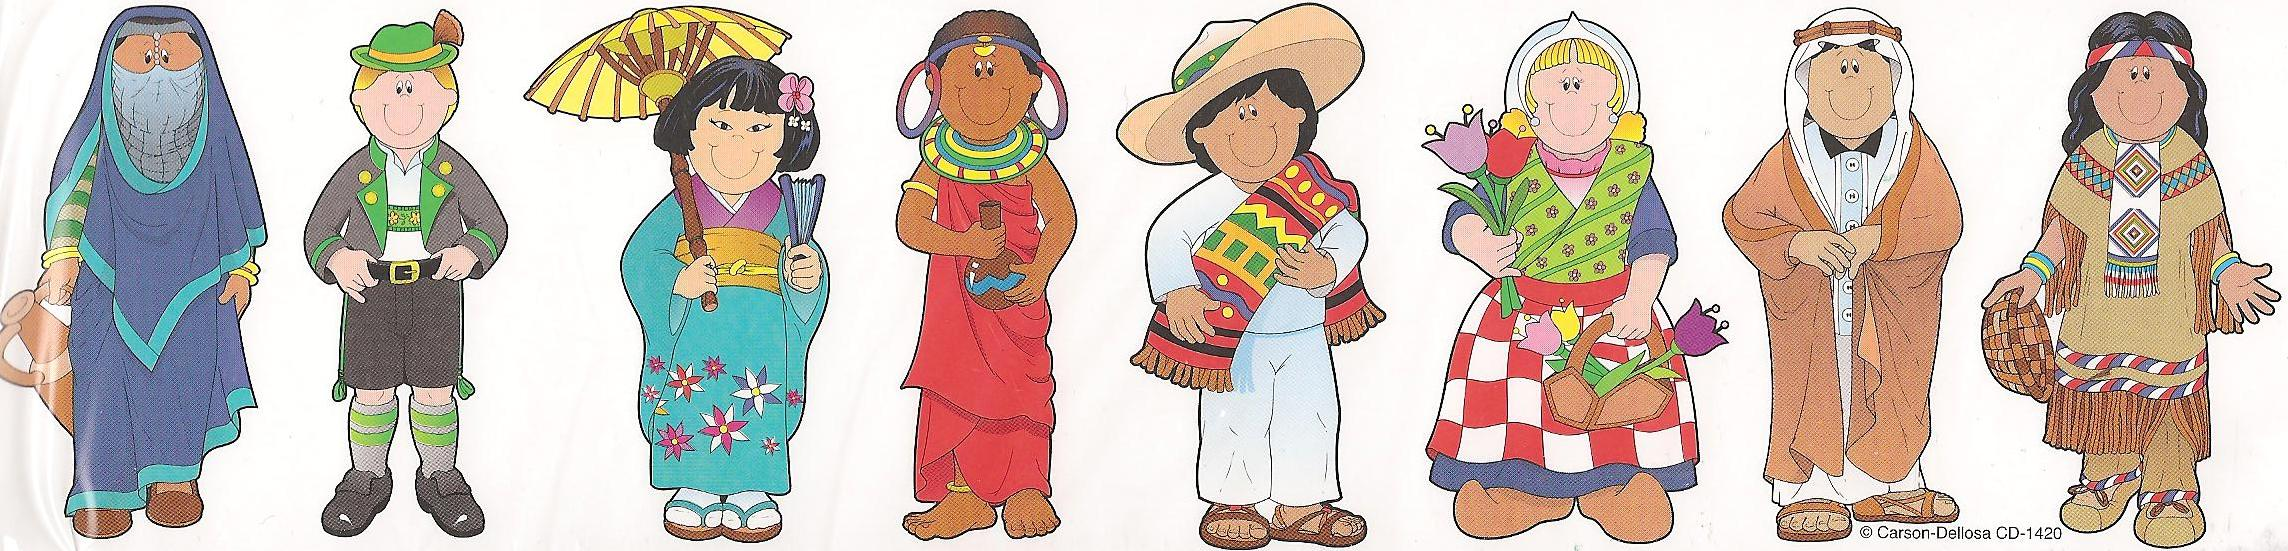 Multicultural Clipart Free No Charge.